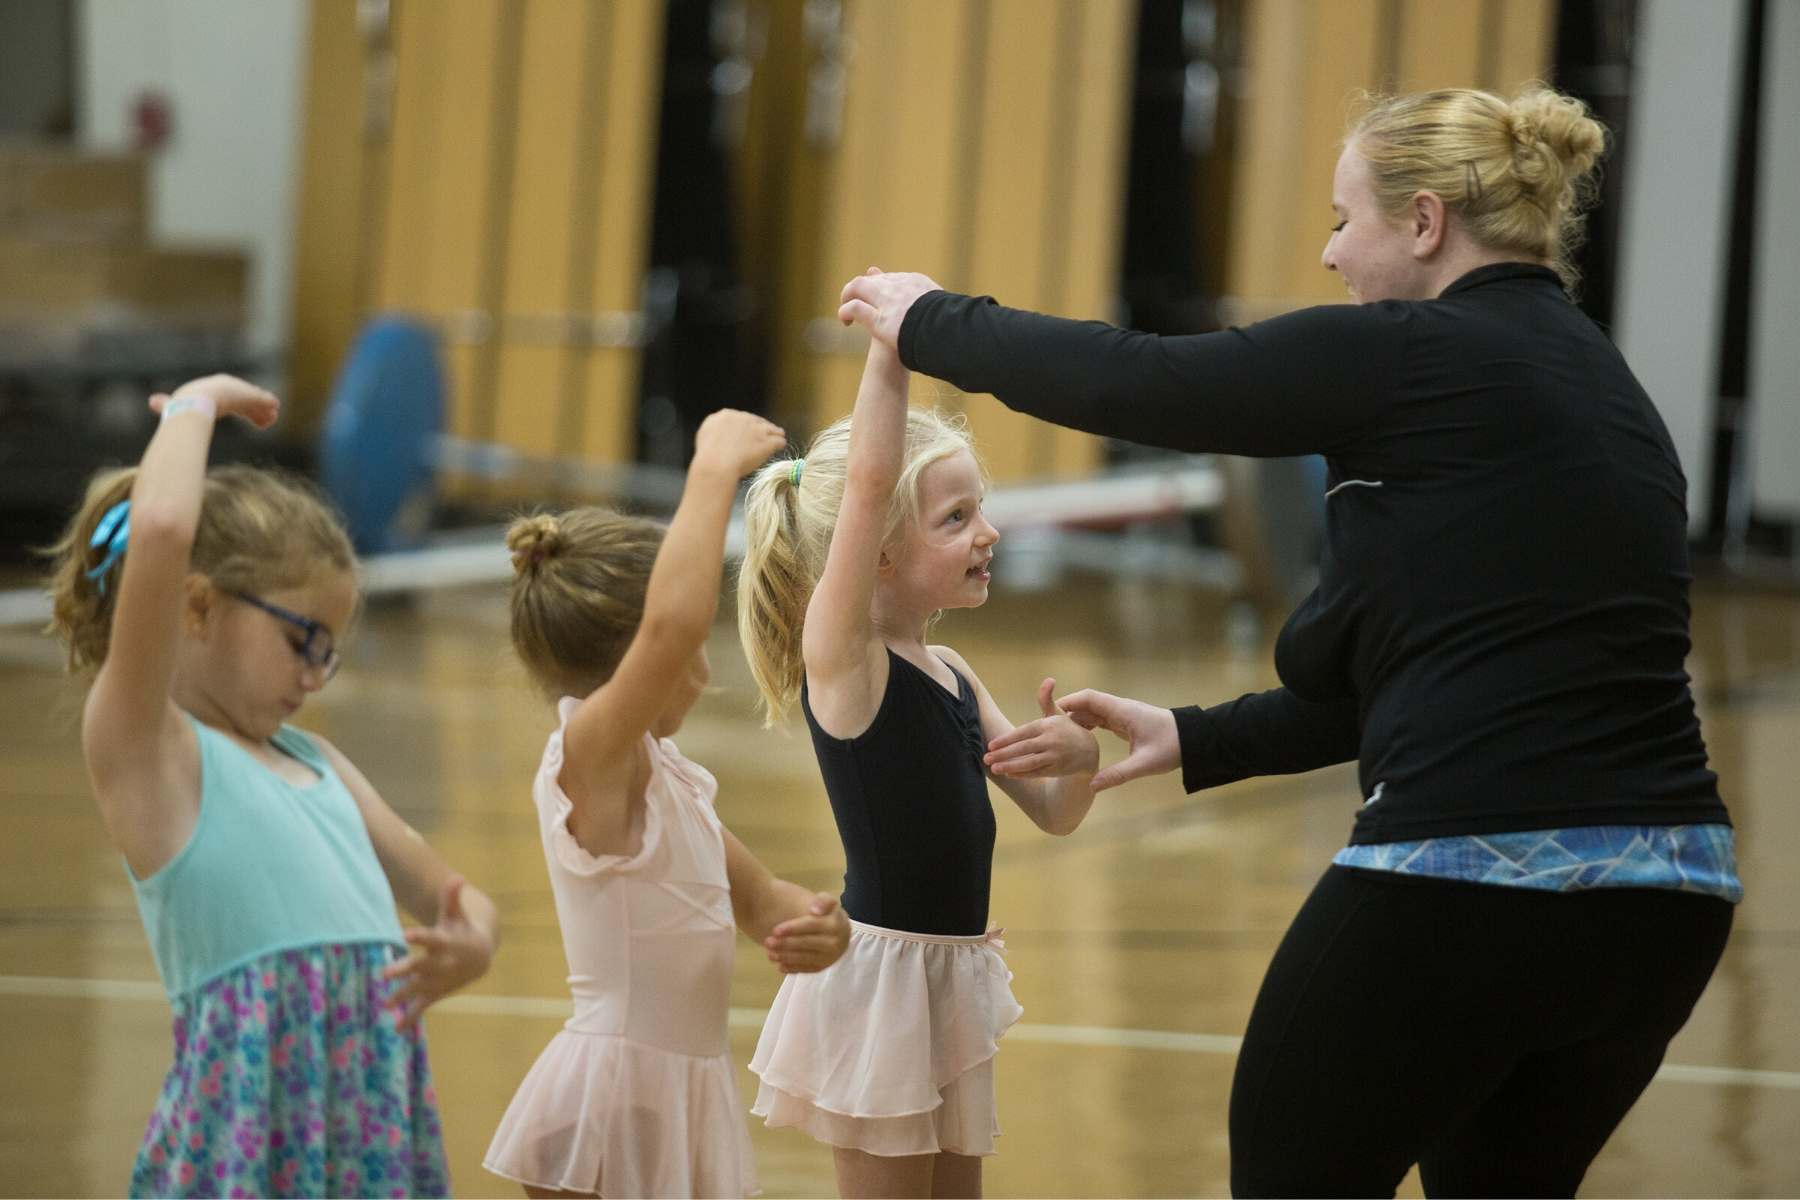 instructor helps dance student